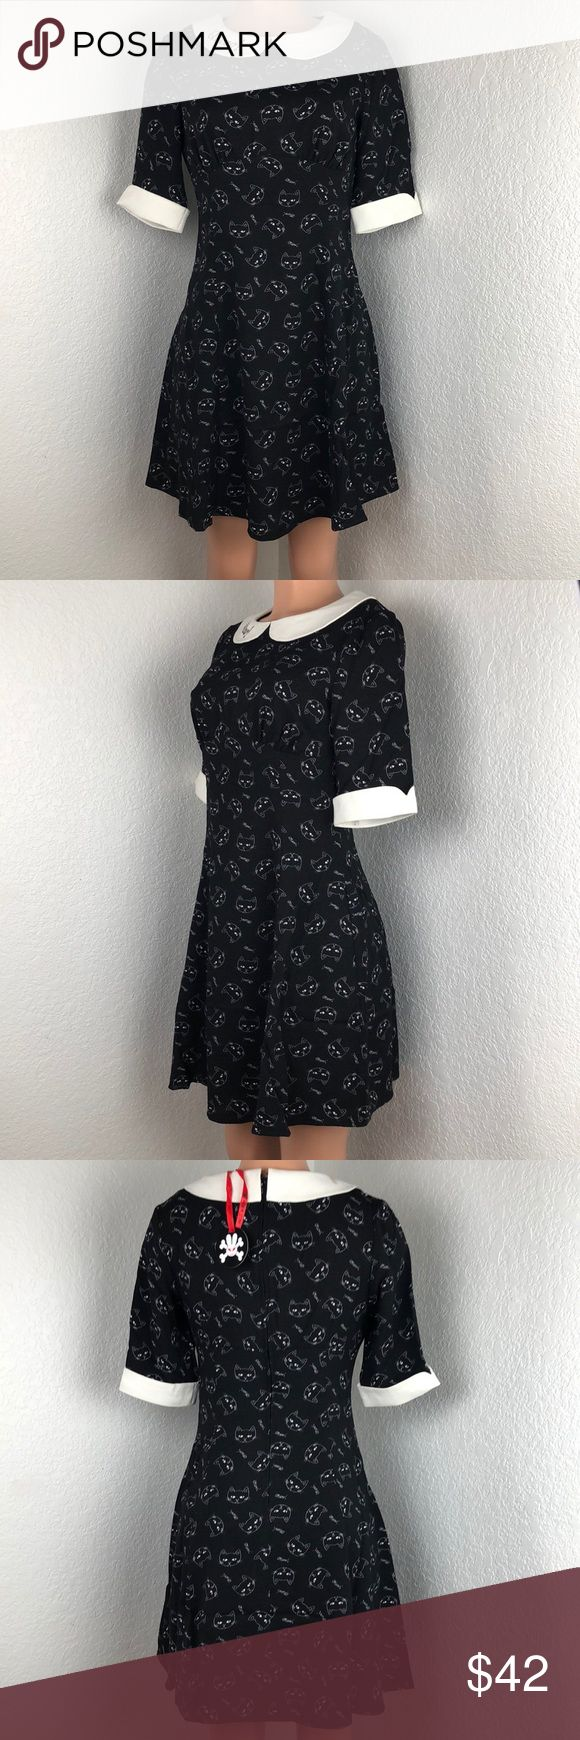 NWT Hell Bunny vintage pinup rockabilly cat dress New with tags vintage inspired black and cream dress. Built-in cream collar says meow! With a cat print and meow written in the print. Cream folded sleeves. Brand new with tags never worn. Size small rockabilly vintage 1940s pinup inspired piece. Retail $82 Hell Bunny Dresses